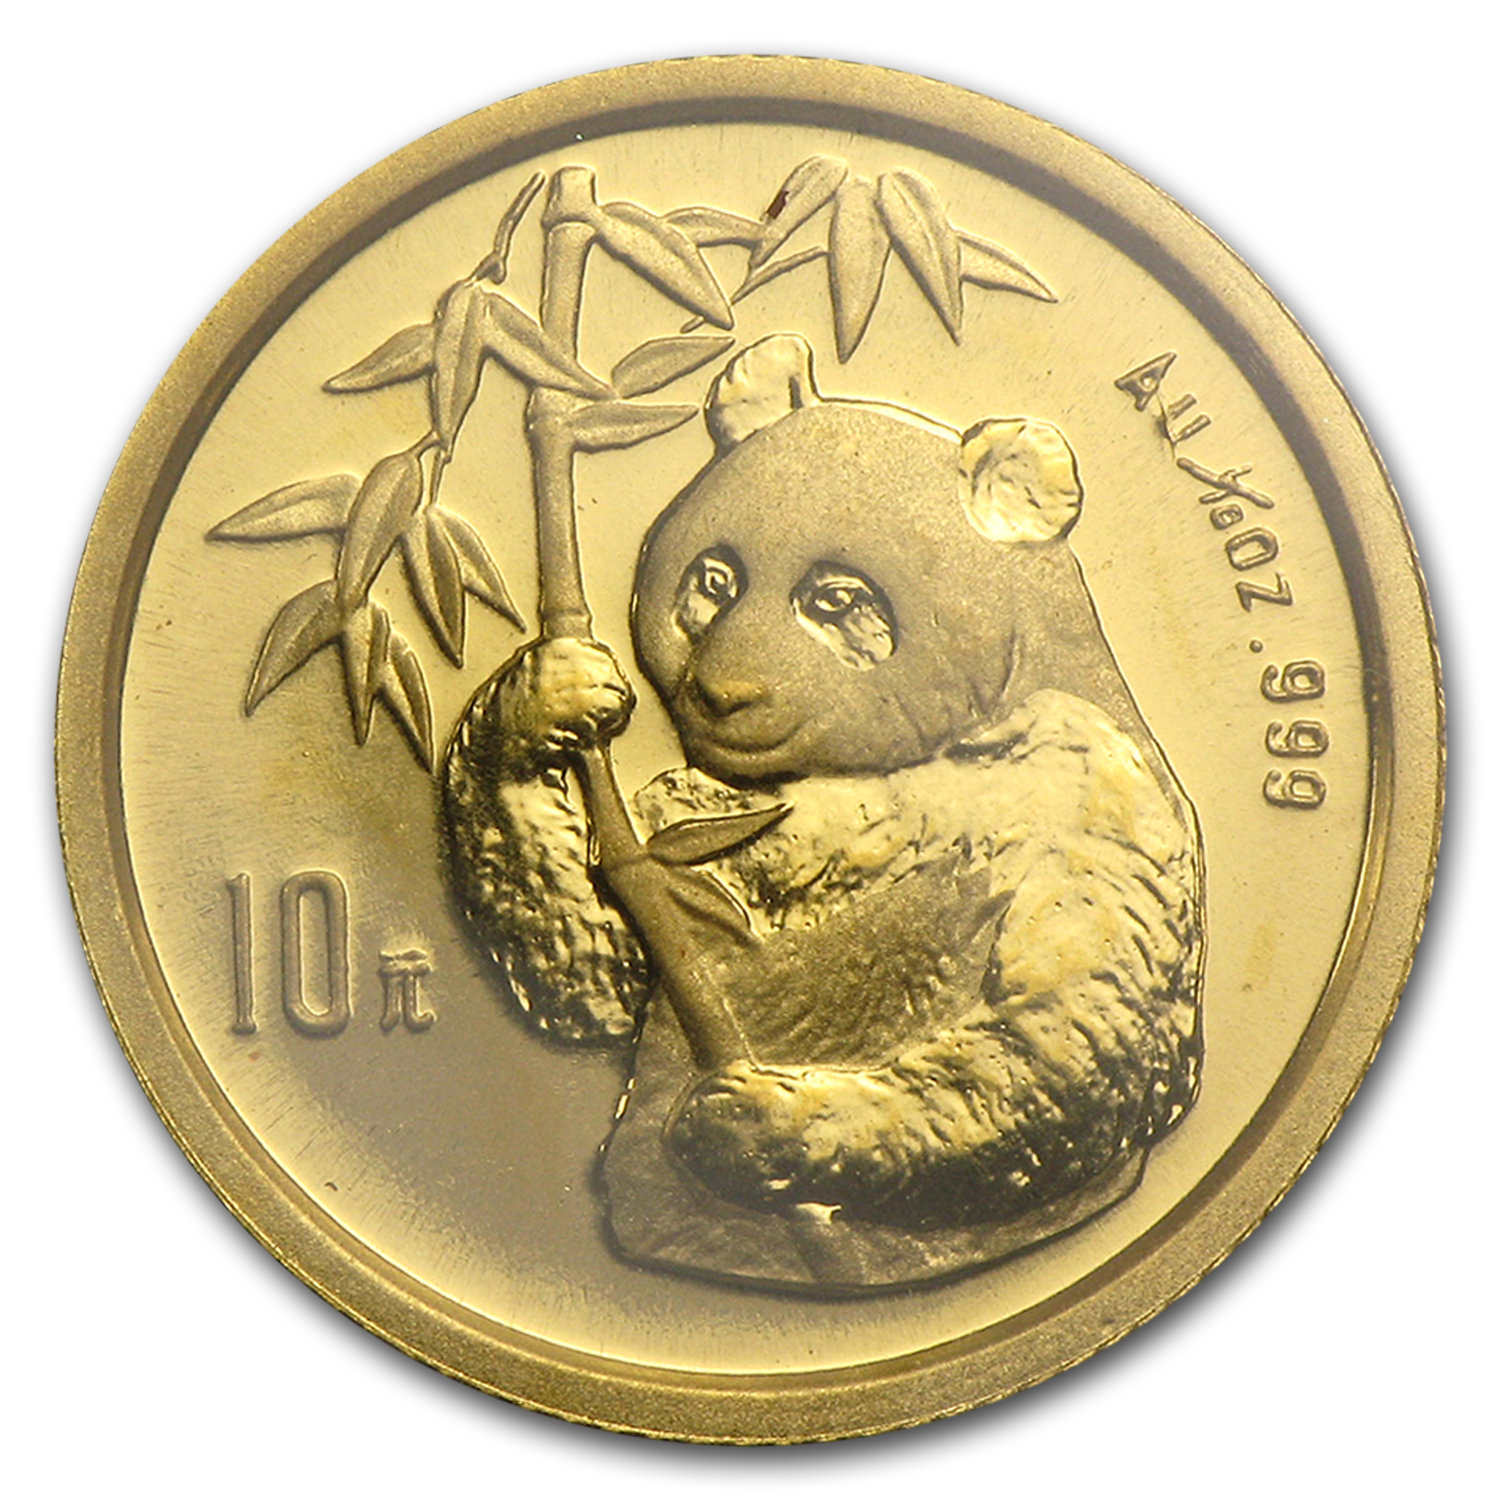 1995 China 1/10 oz Gold Panda Large Date BU (Sealed)